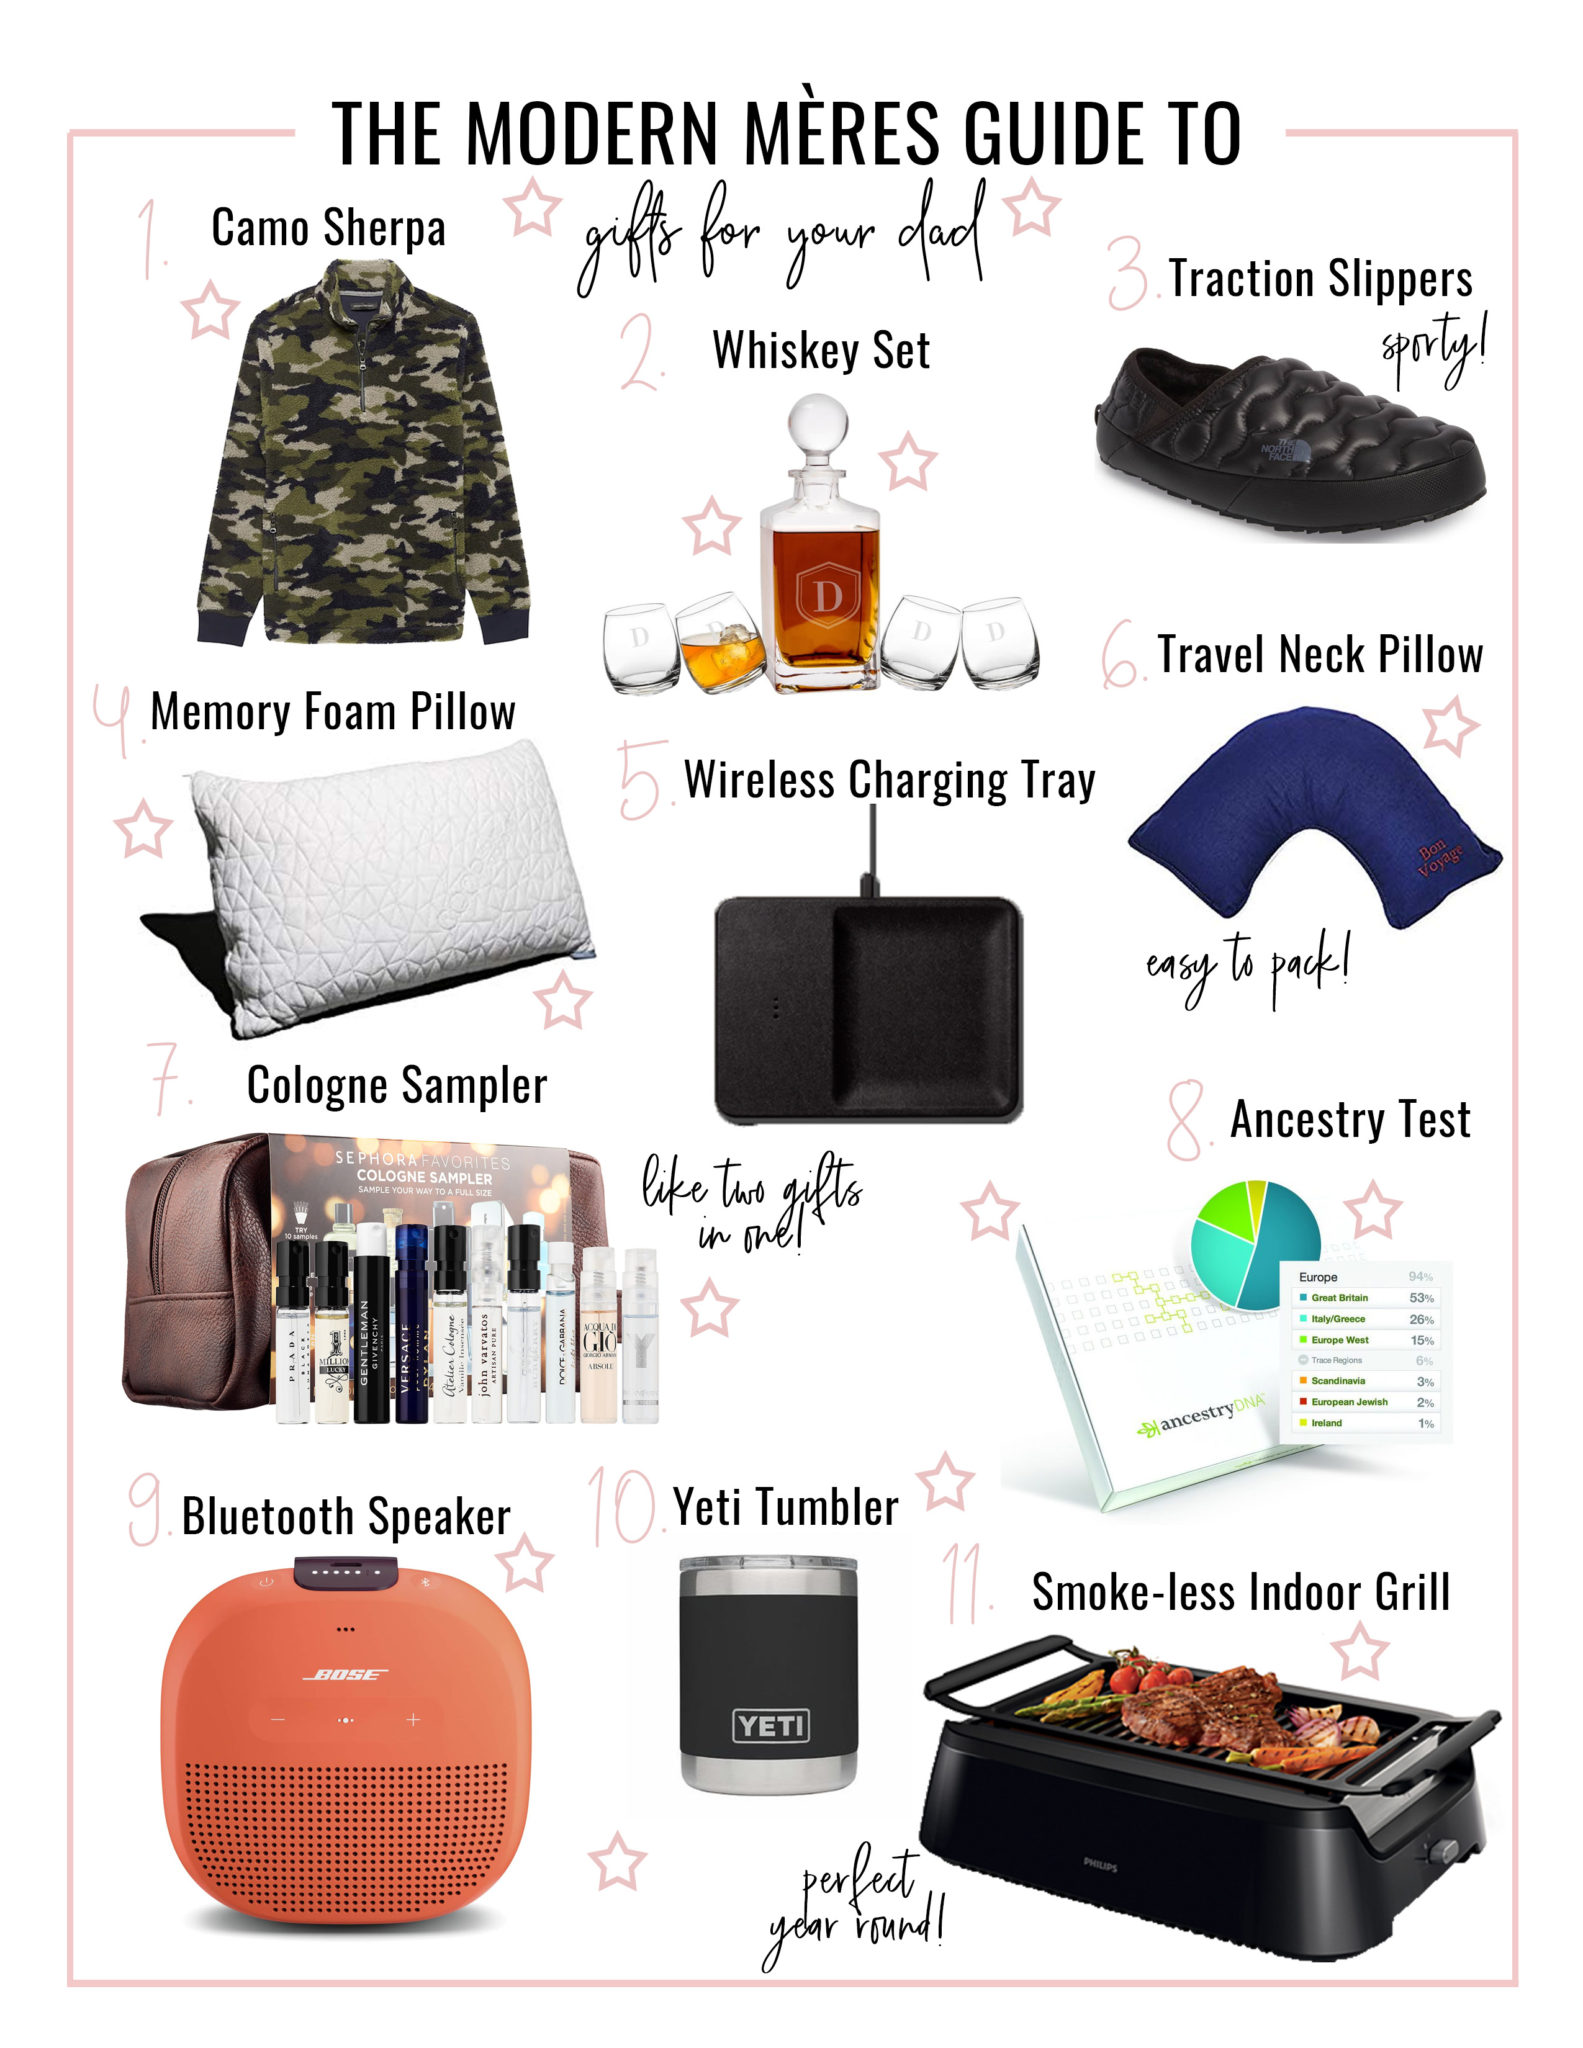 Christmas gift ideas for your dad, brother, uncle, grandpa, father in law